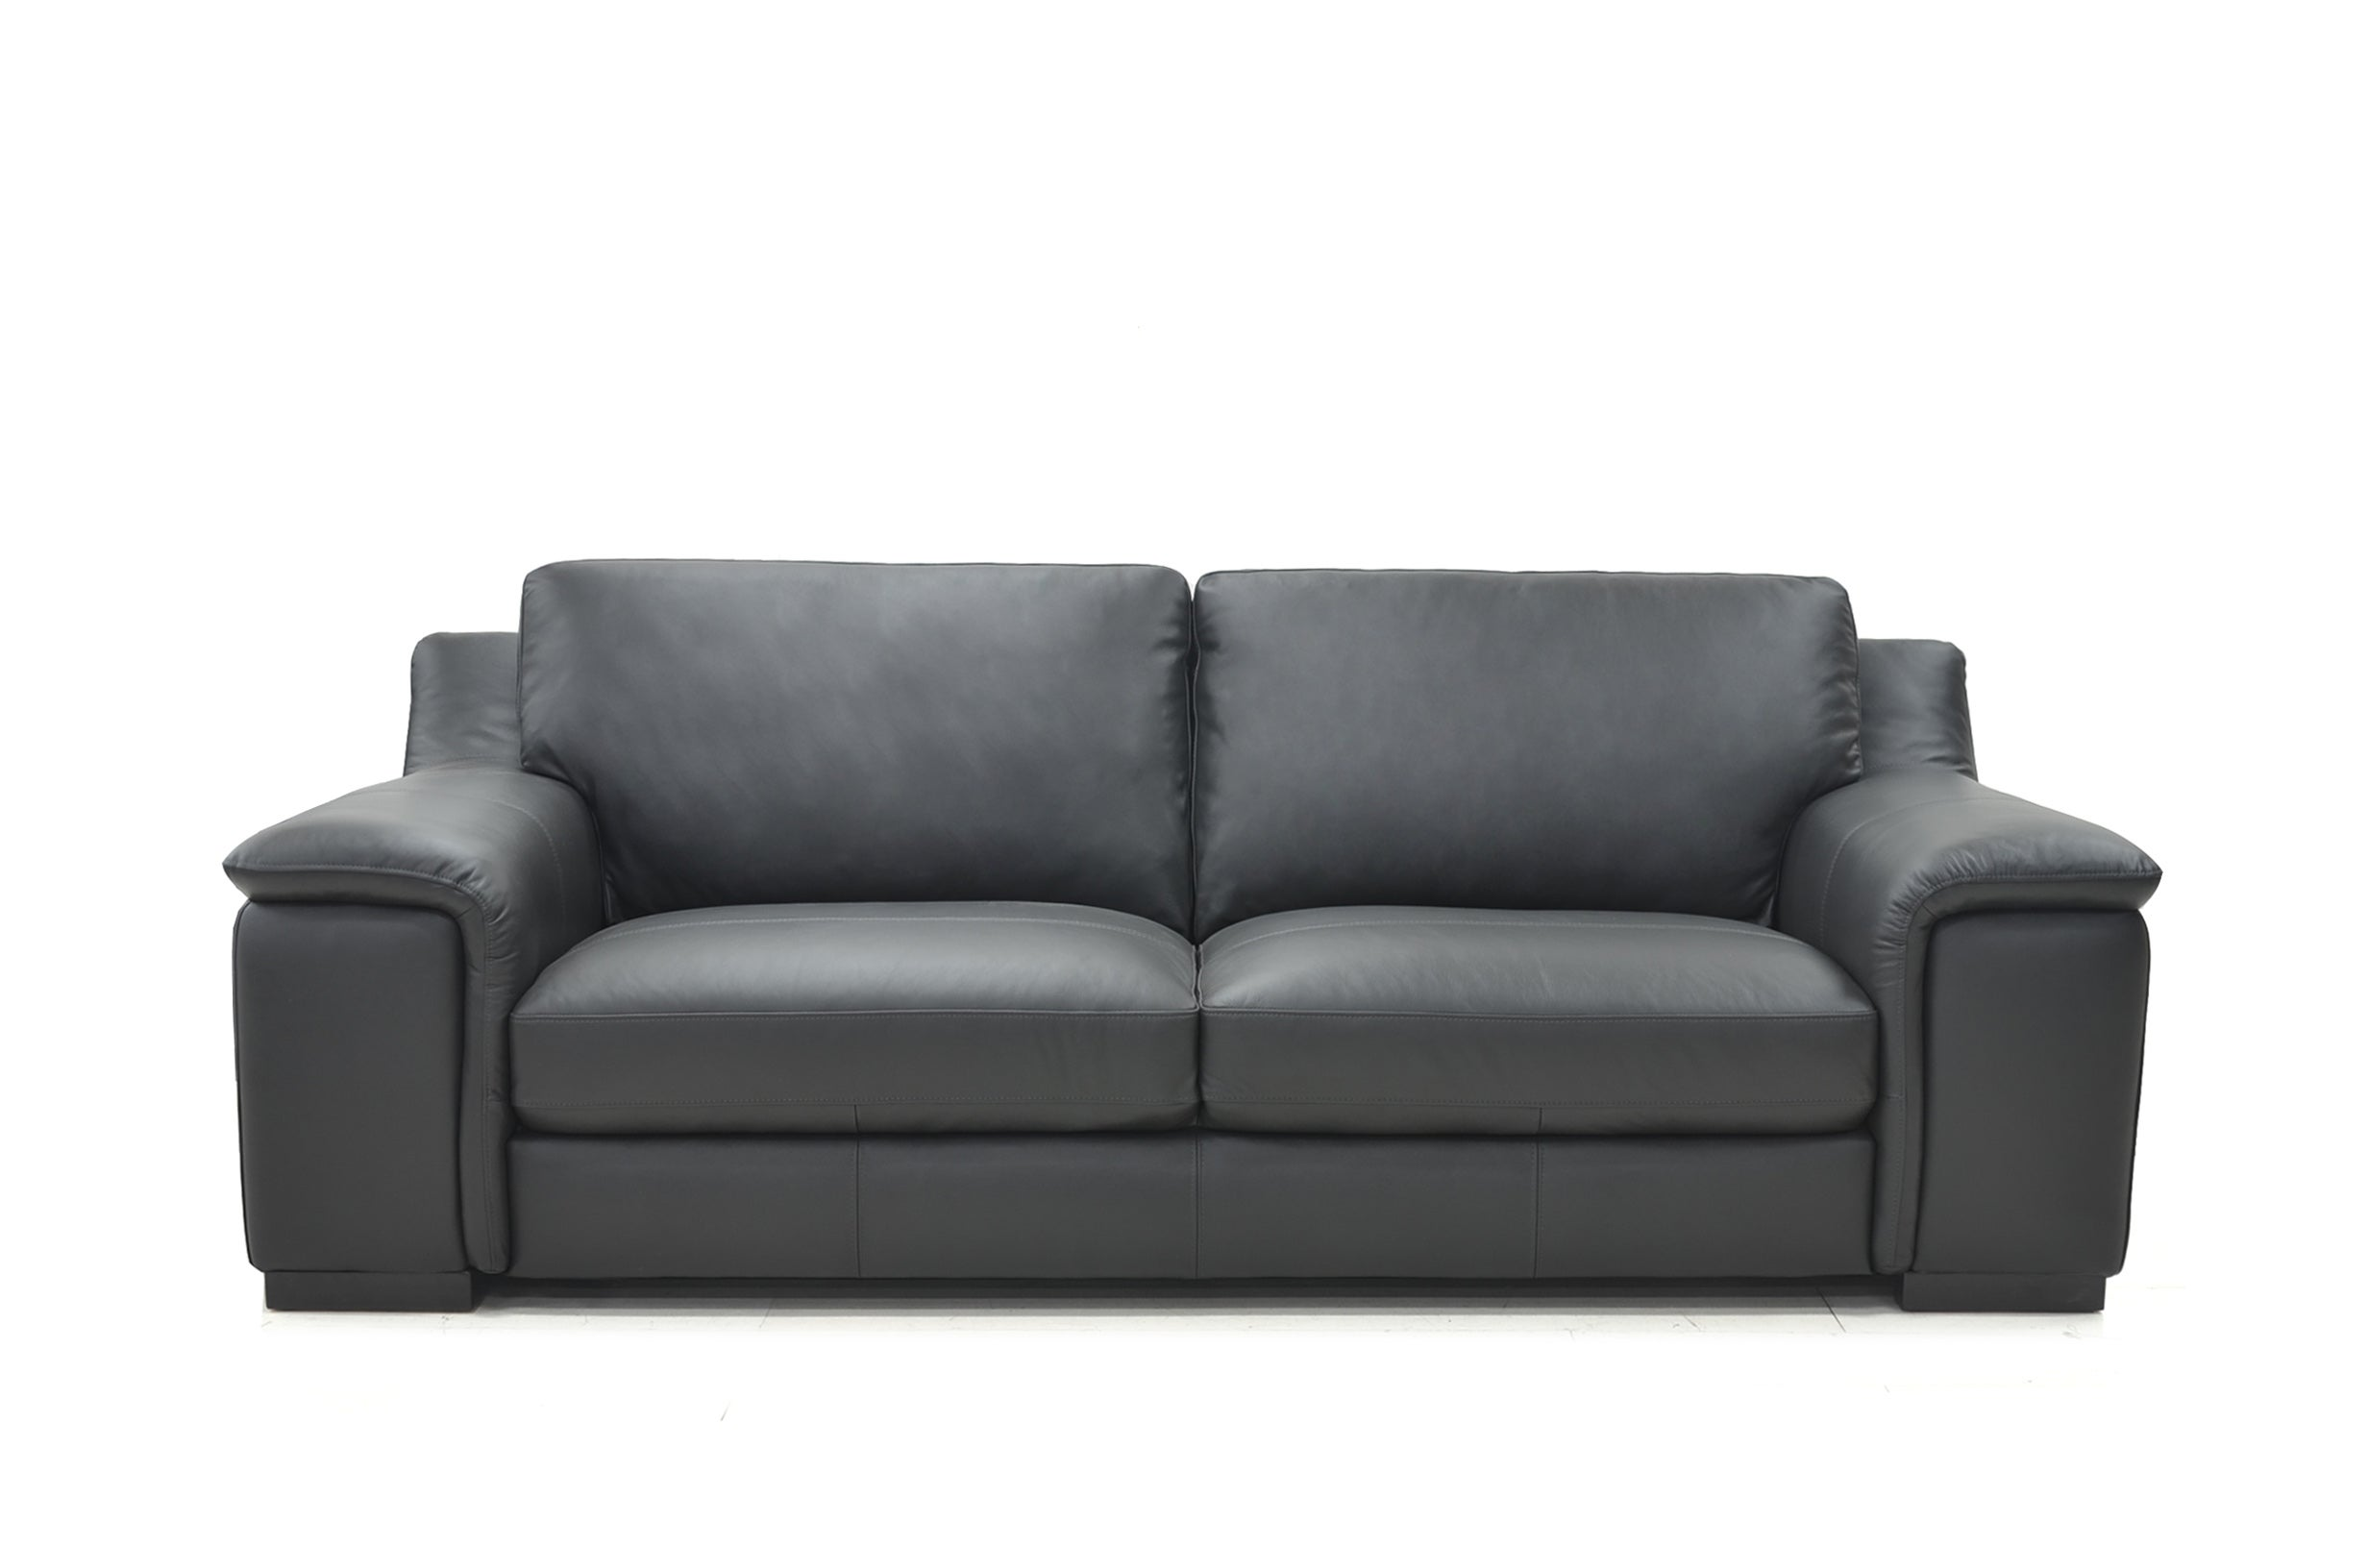 Horizon 2.5-Seater Full Leather Upholstered Lounge Sofa Couch Solid Wood Legs Frame-Graphite